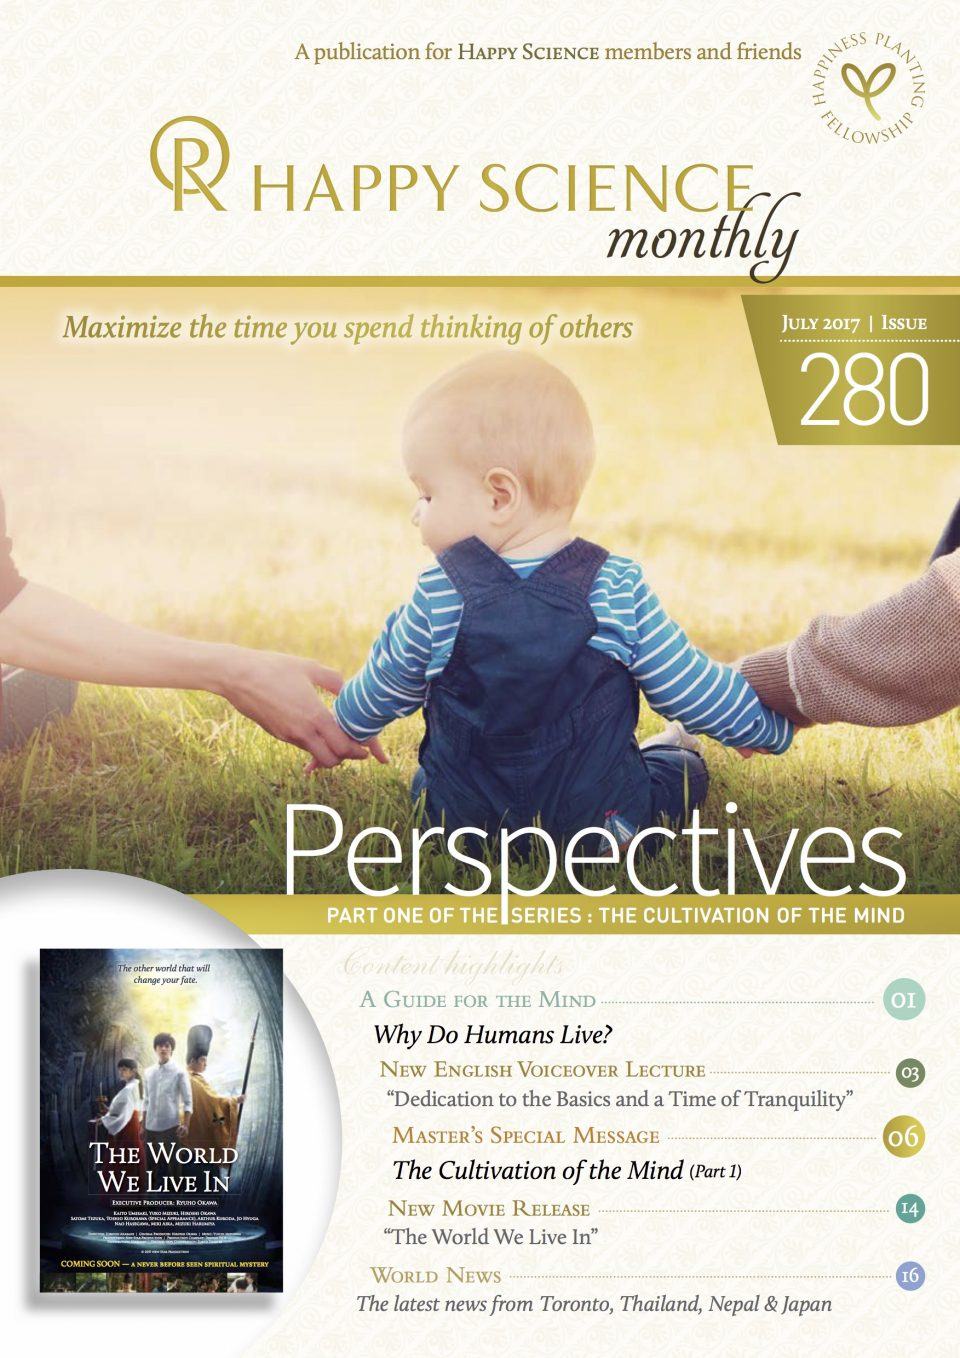 HAPPY SCIENCE Monthly 280 is released!